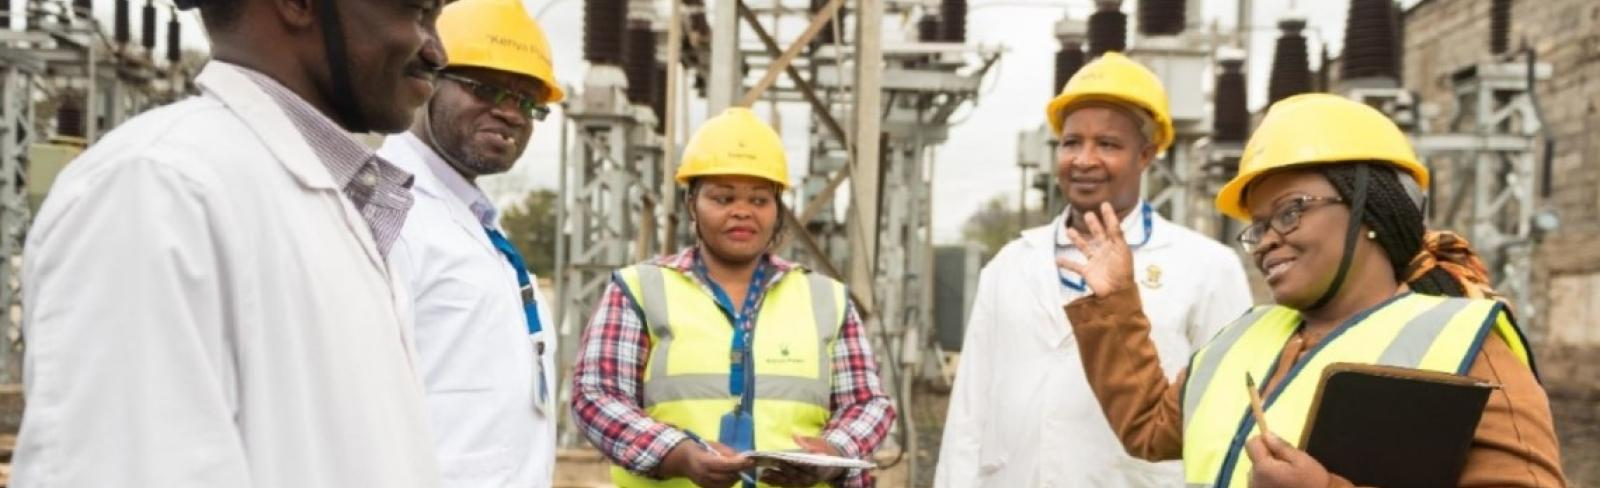 BLOG | Getting a Snapshot of Women's Employment in the Power Sector in Africa and South Asia